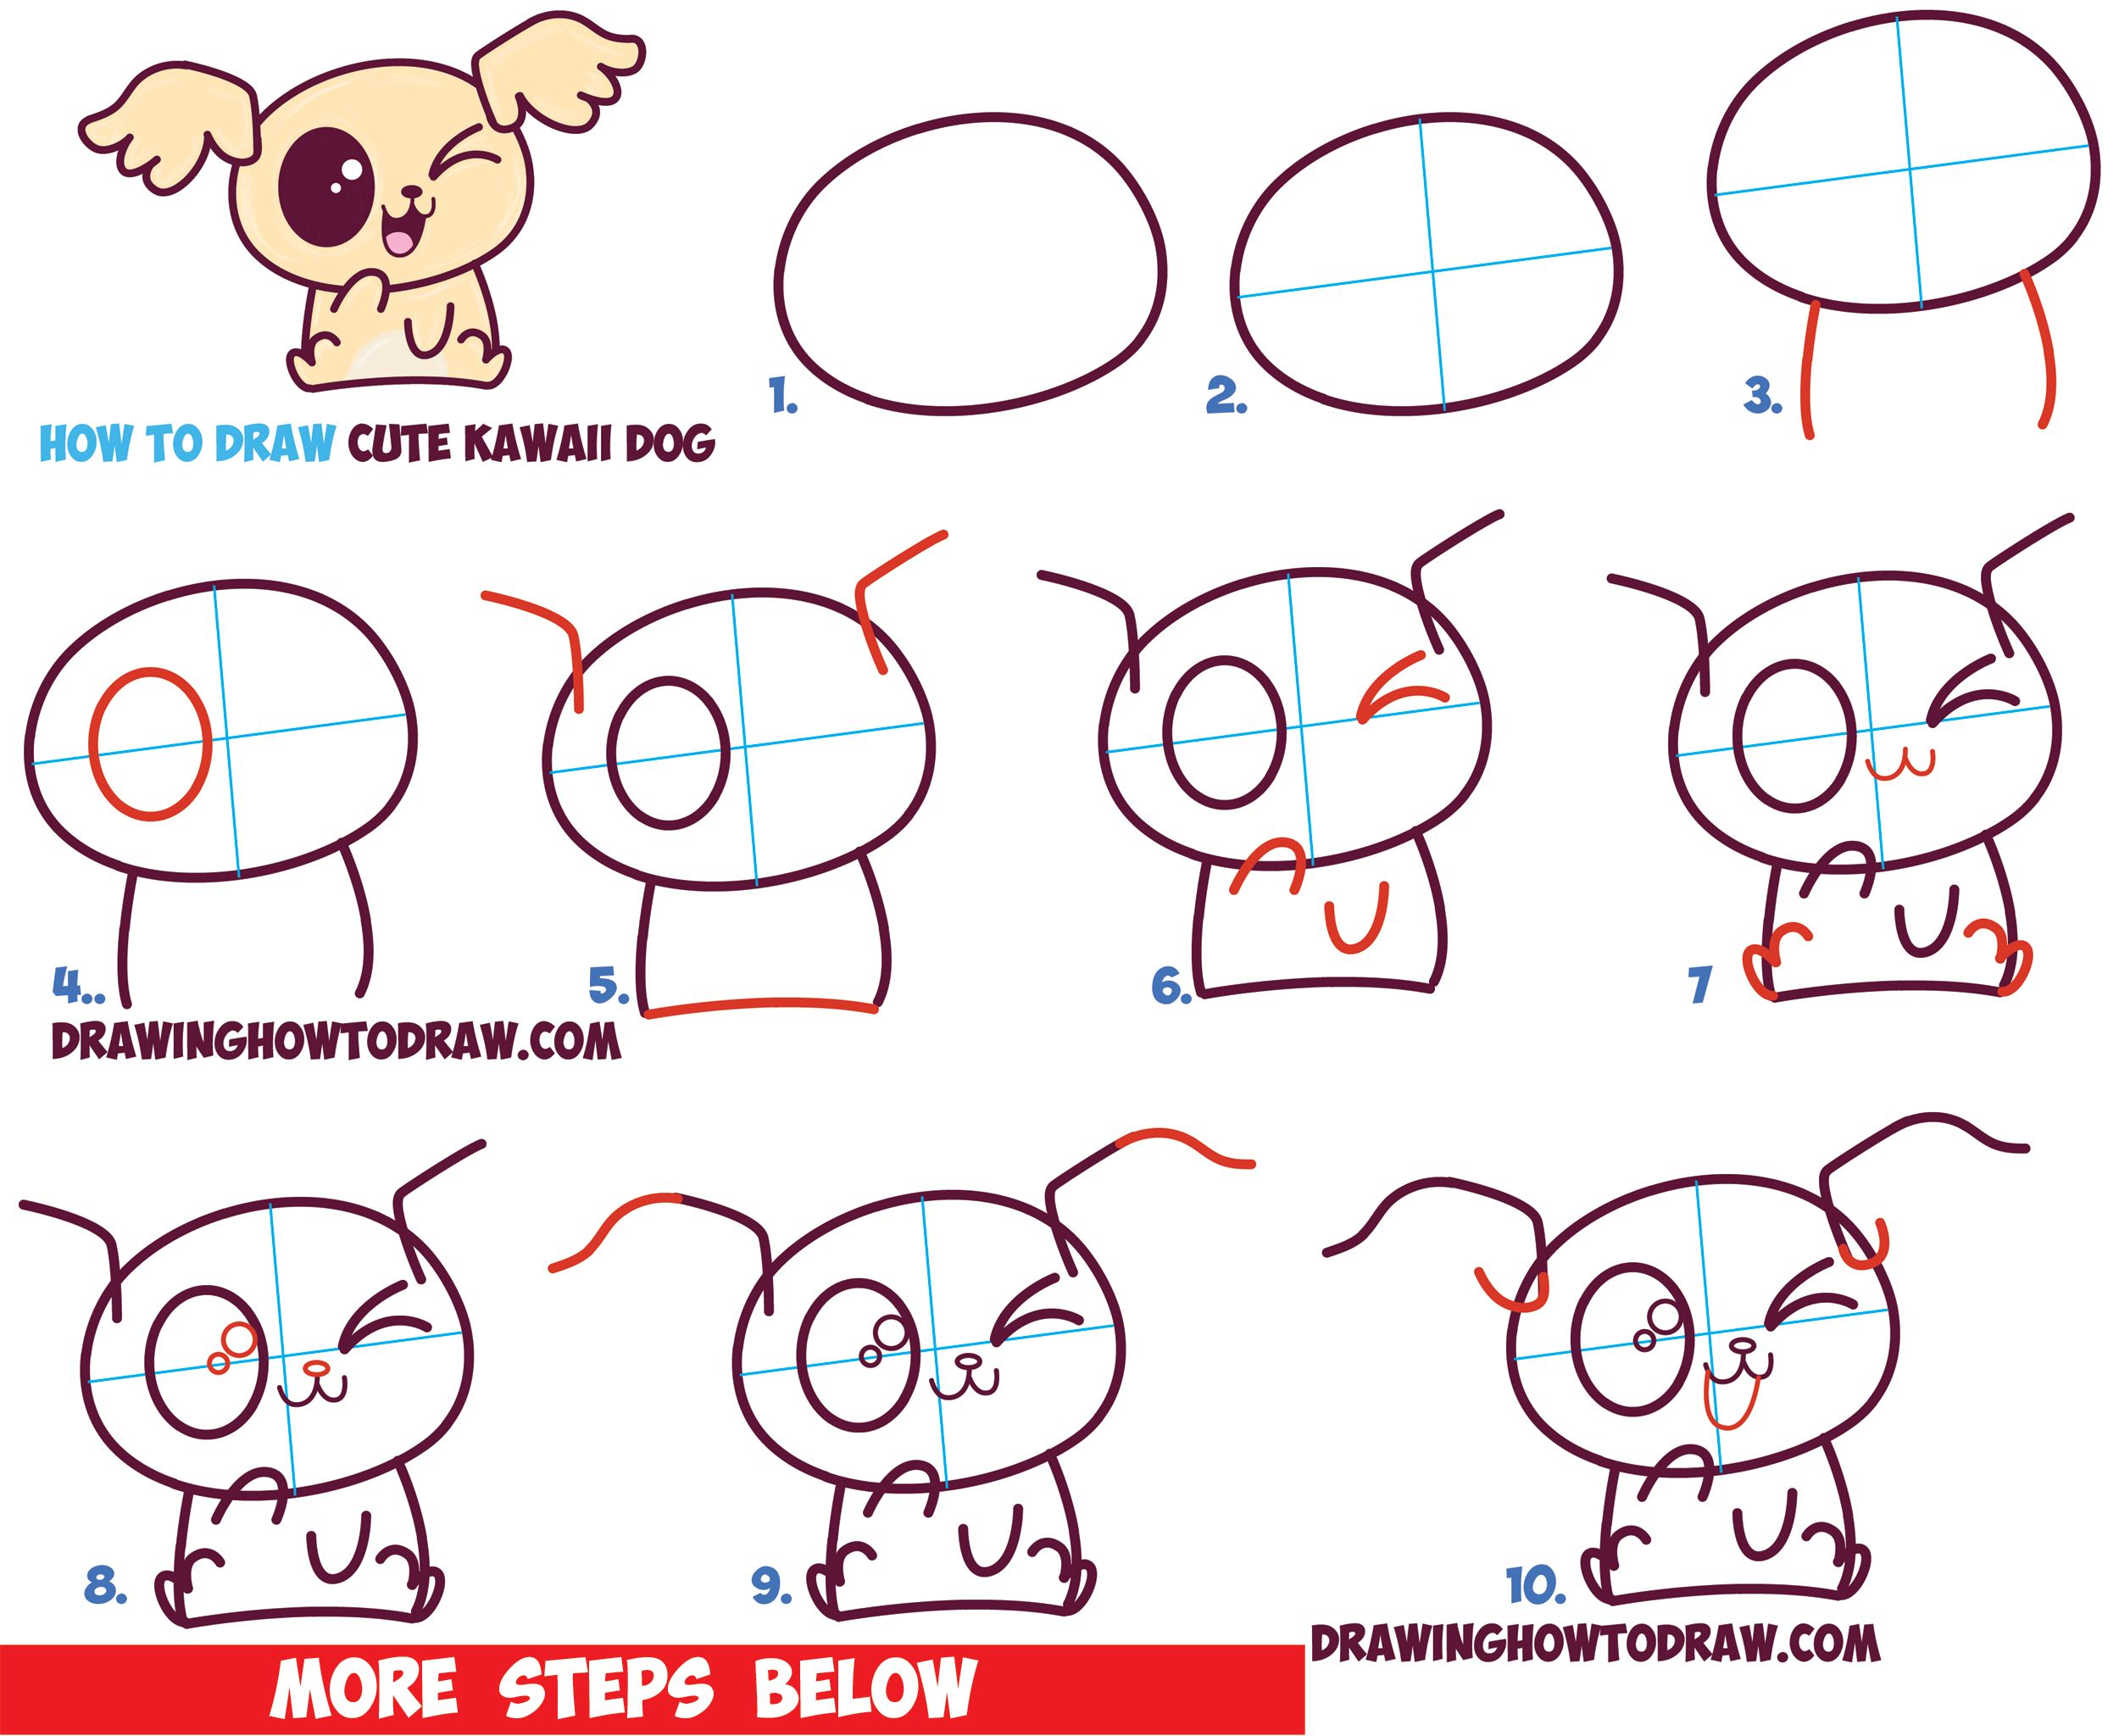 How To Draw Cute Kawaii / Chibi Puppy Dogs With Easy Step